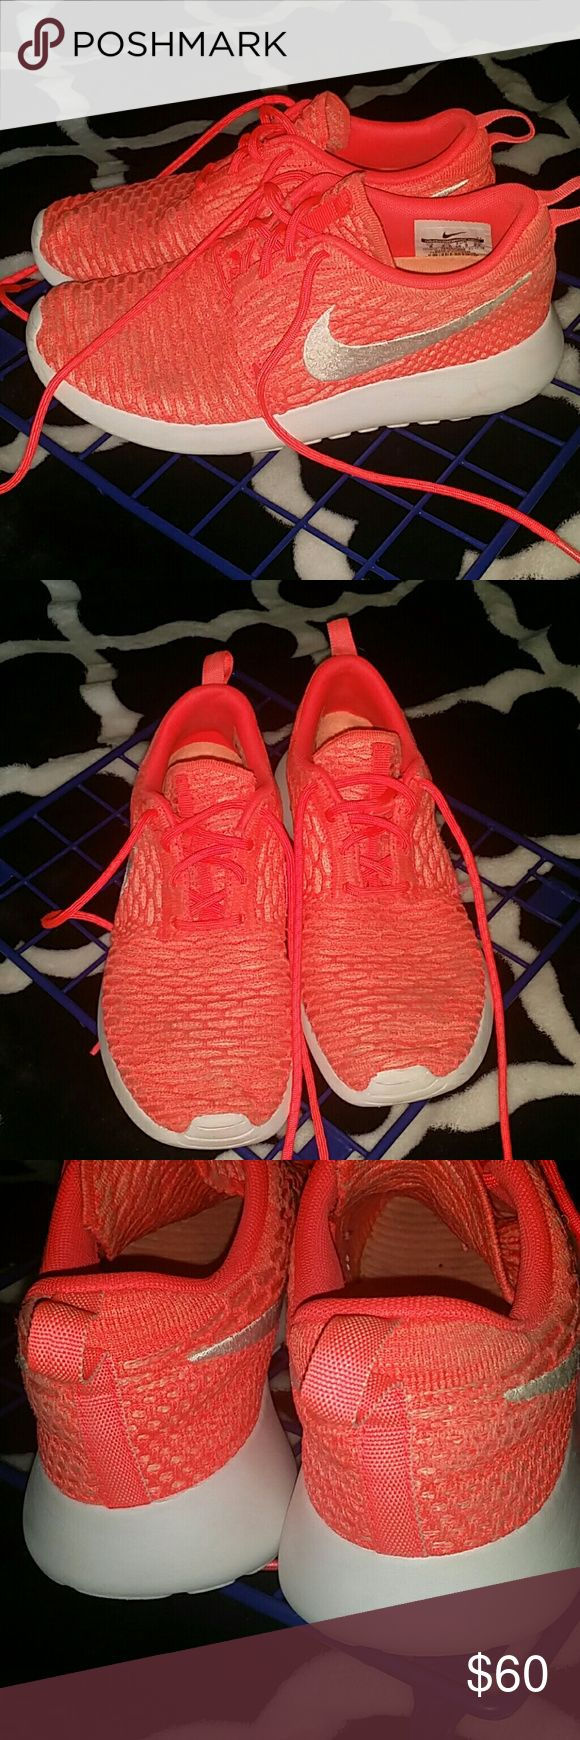 Nike flyknit roshes Like new. Some dirt but is is not noticable! No holes or rips. Cute!!! Nike Shoes Athletic Shoes